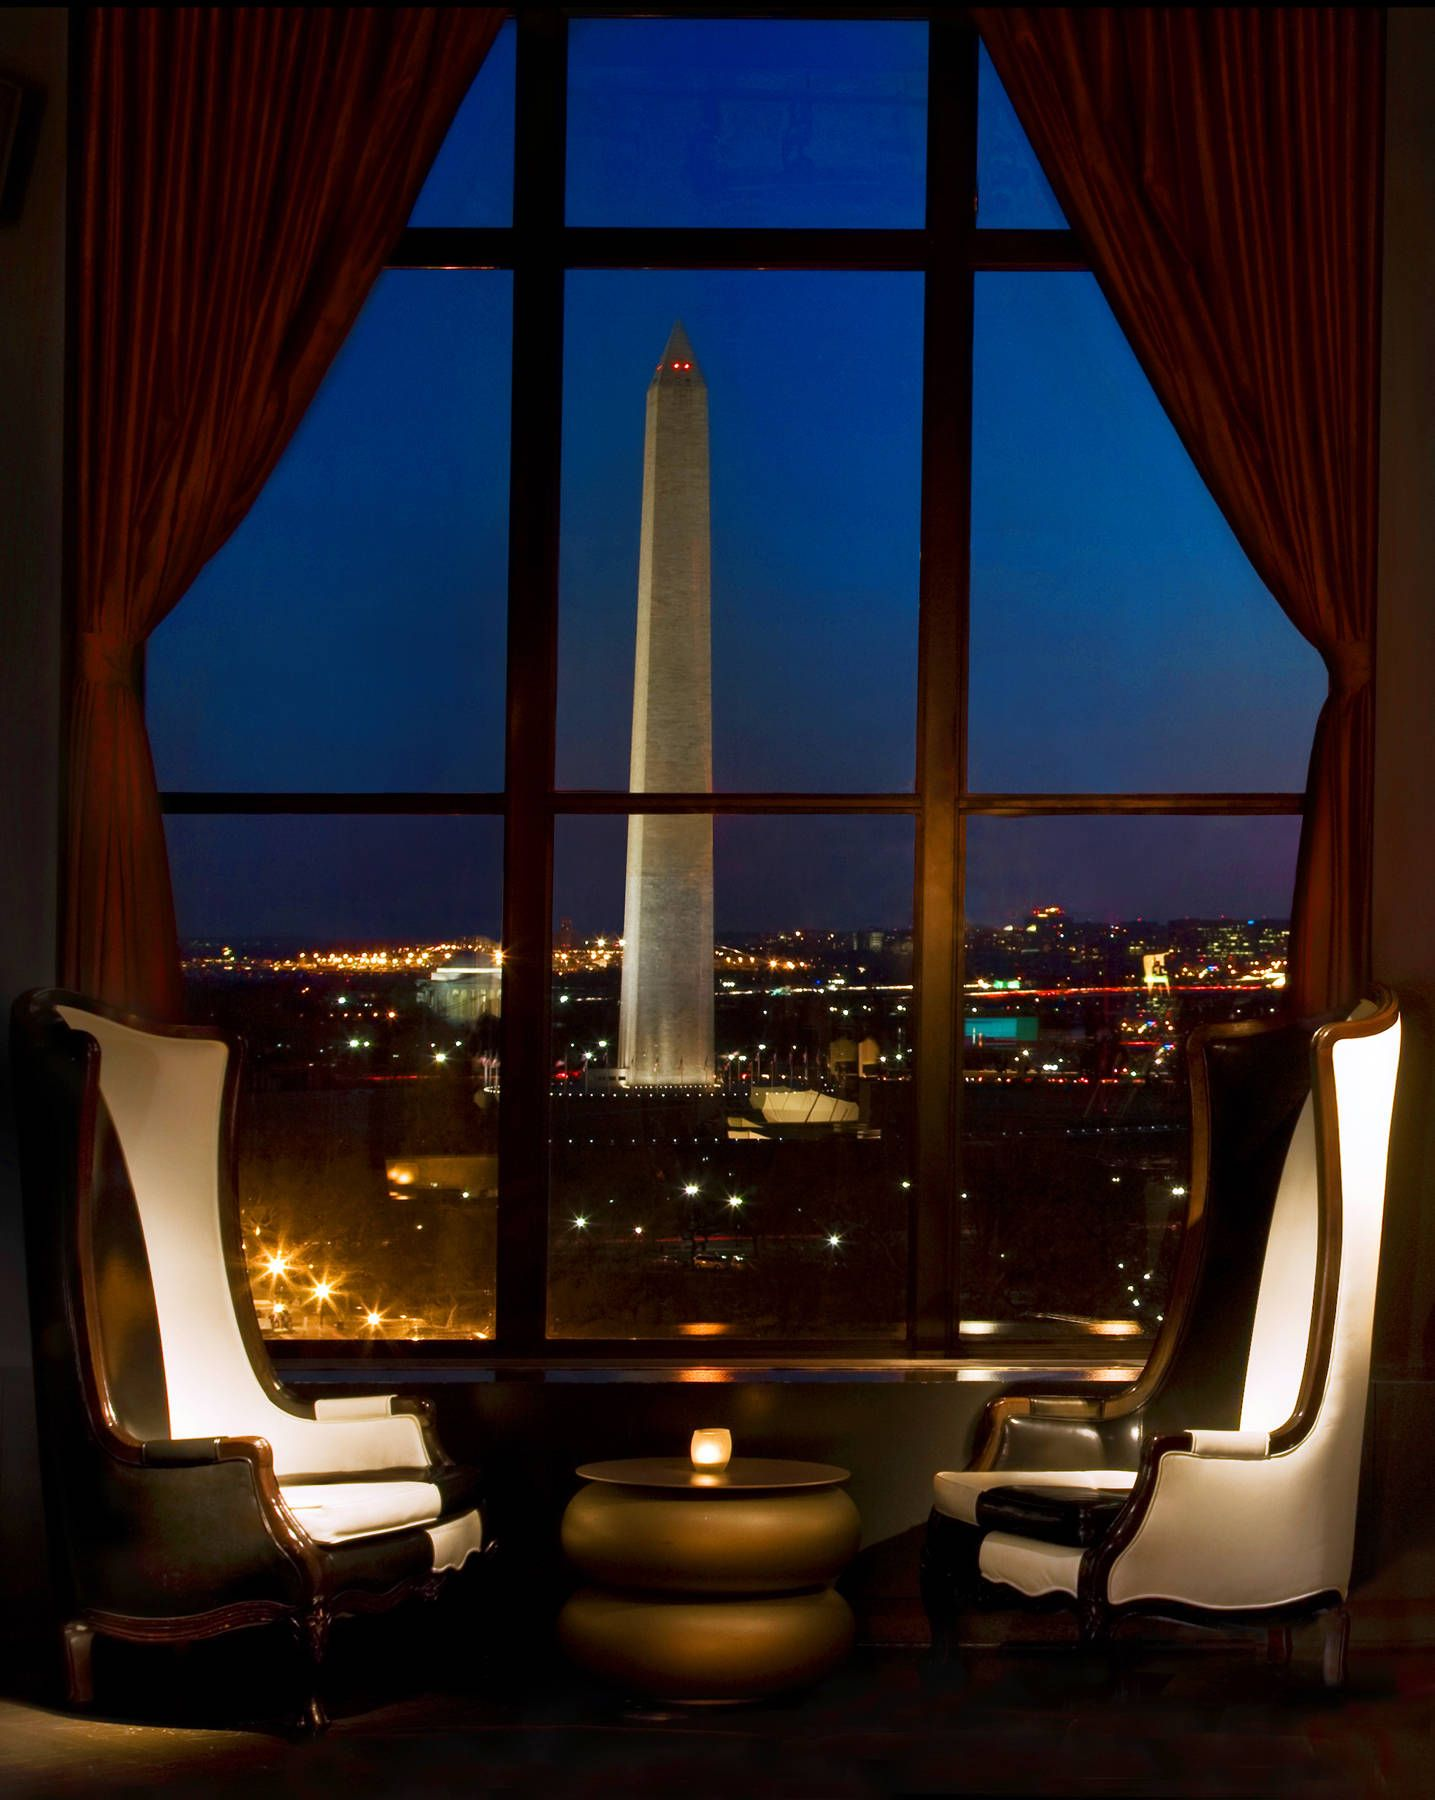 The Rooftop Bar At W Hotel In Washington Dc Offers One Of Best